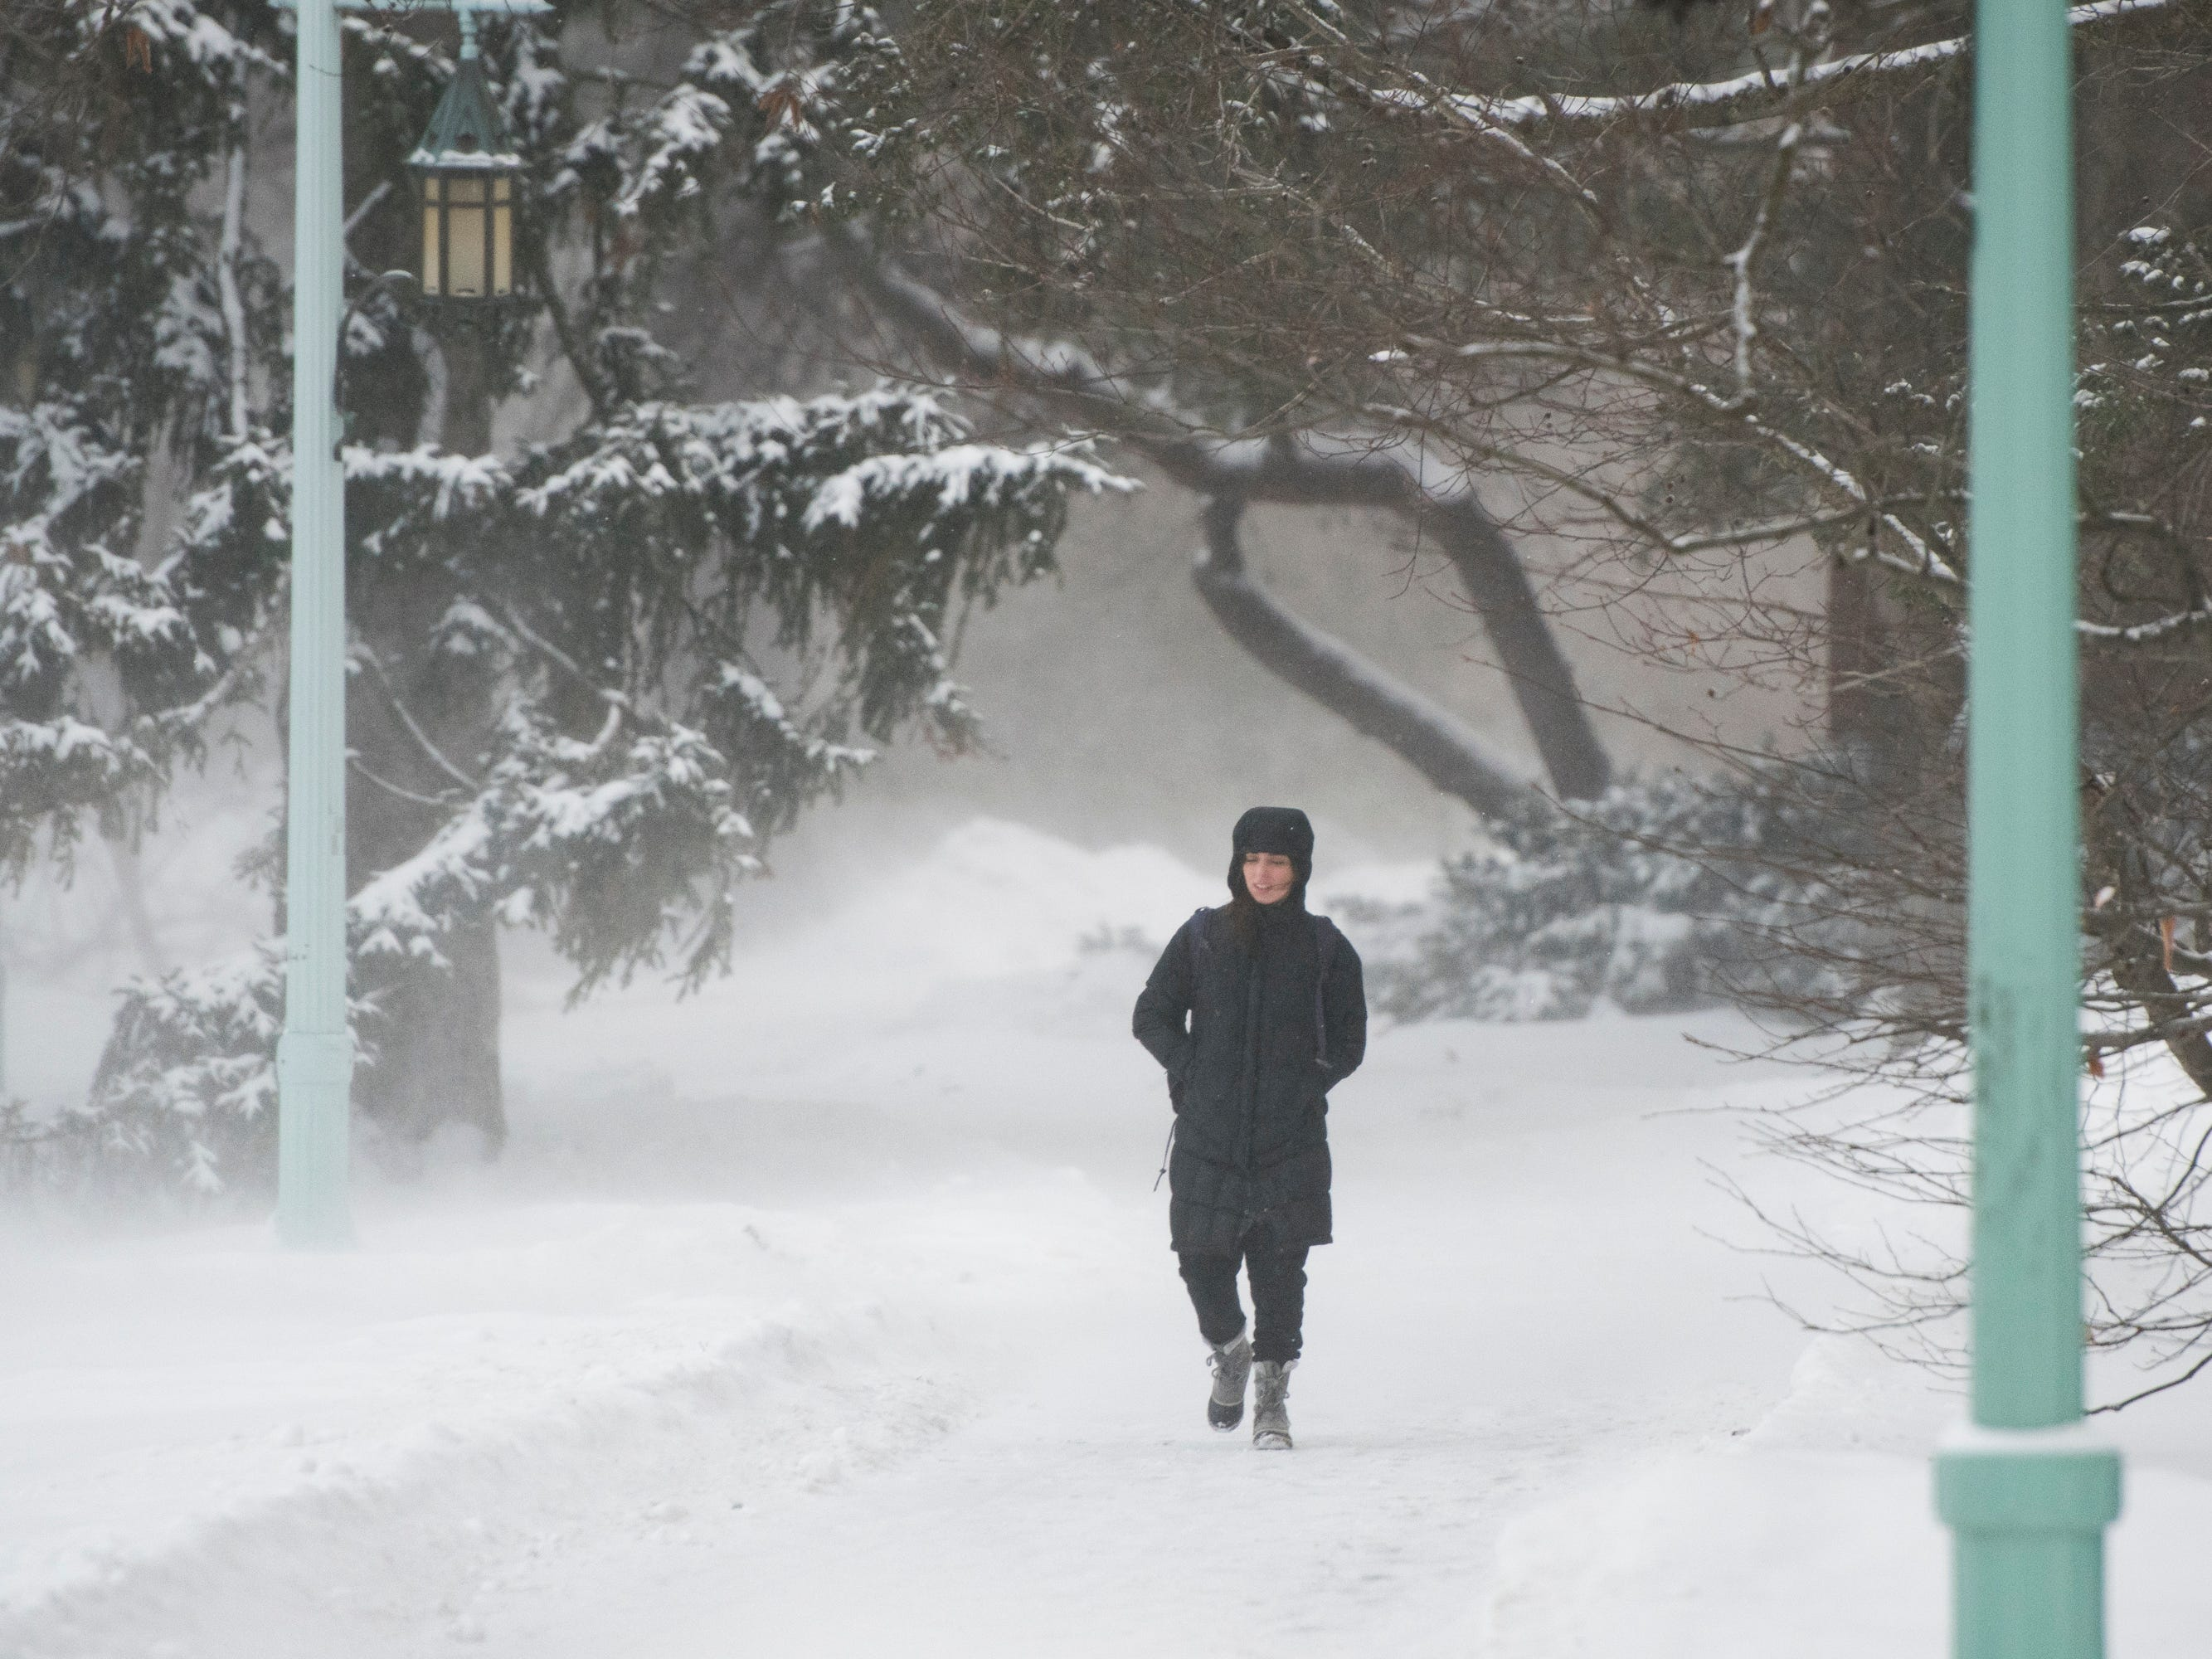 Despite sub-zero windchills, a woman makes her way across campus on the campus of Michigan State University Tuesday, Jan. 29, 2019, in East Lansing, Michigan.  MSU has called off classes tommorow due to bitter temperatures.  [USA Today Network/Matthew Dae Smith/Lansing State Journal]